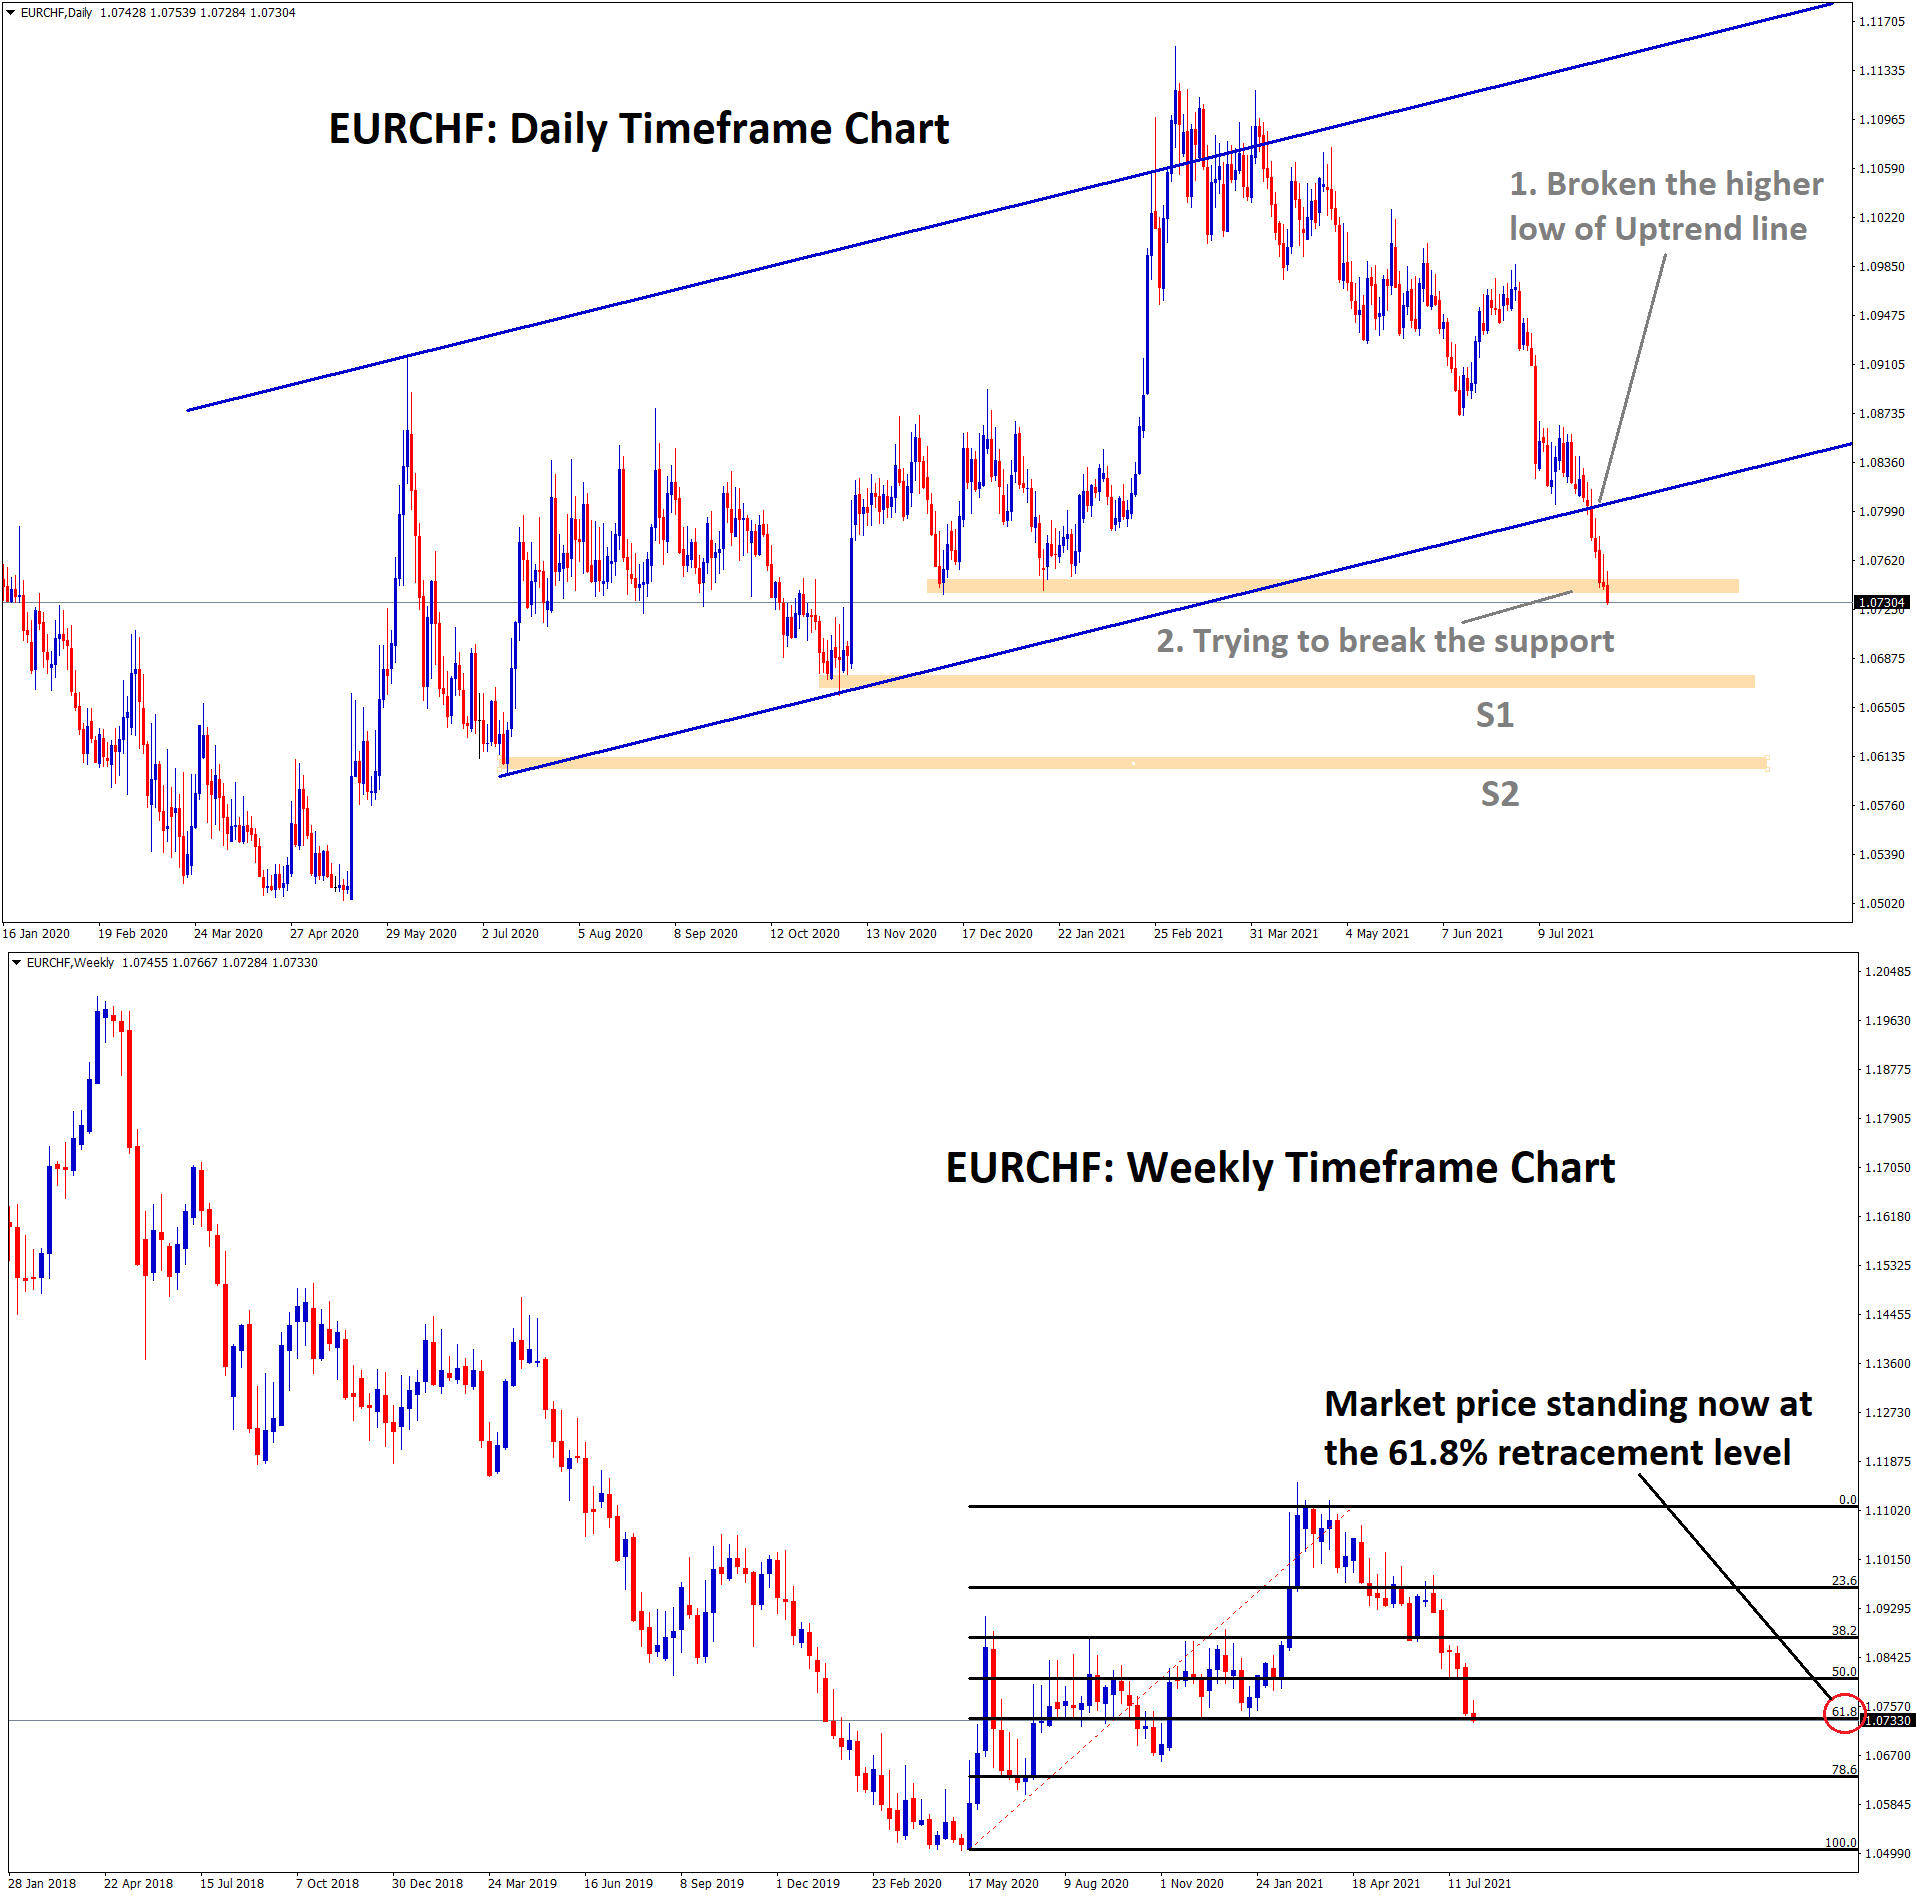 EURCHF has broken the higher low of trend line and breaking the recent support now 1